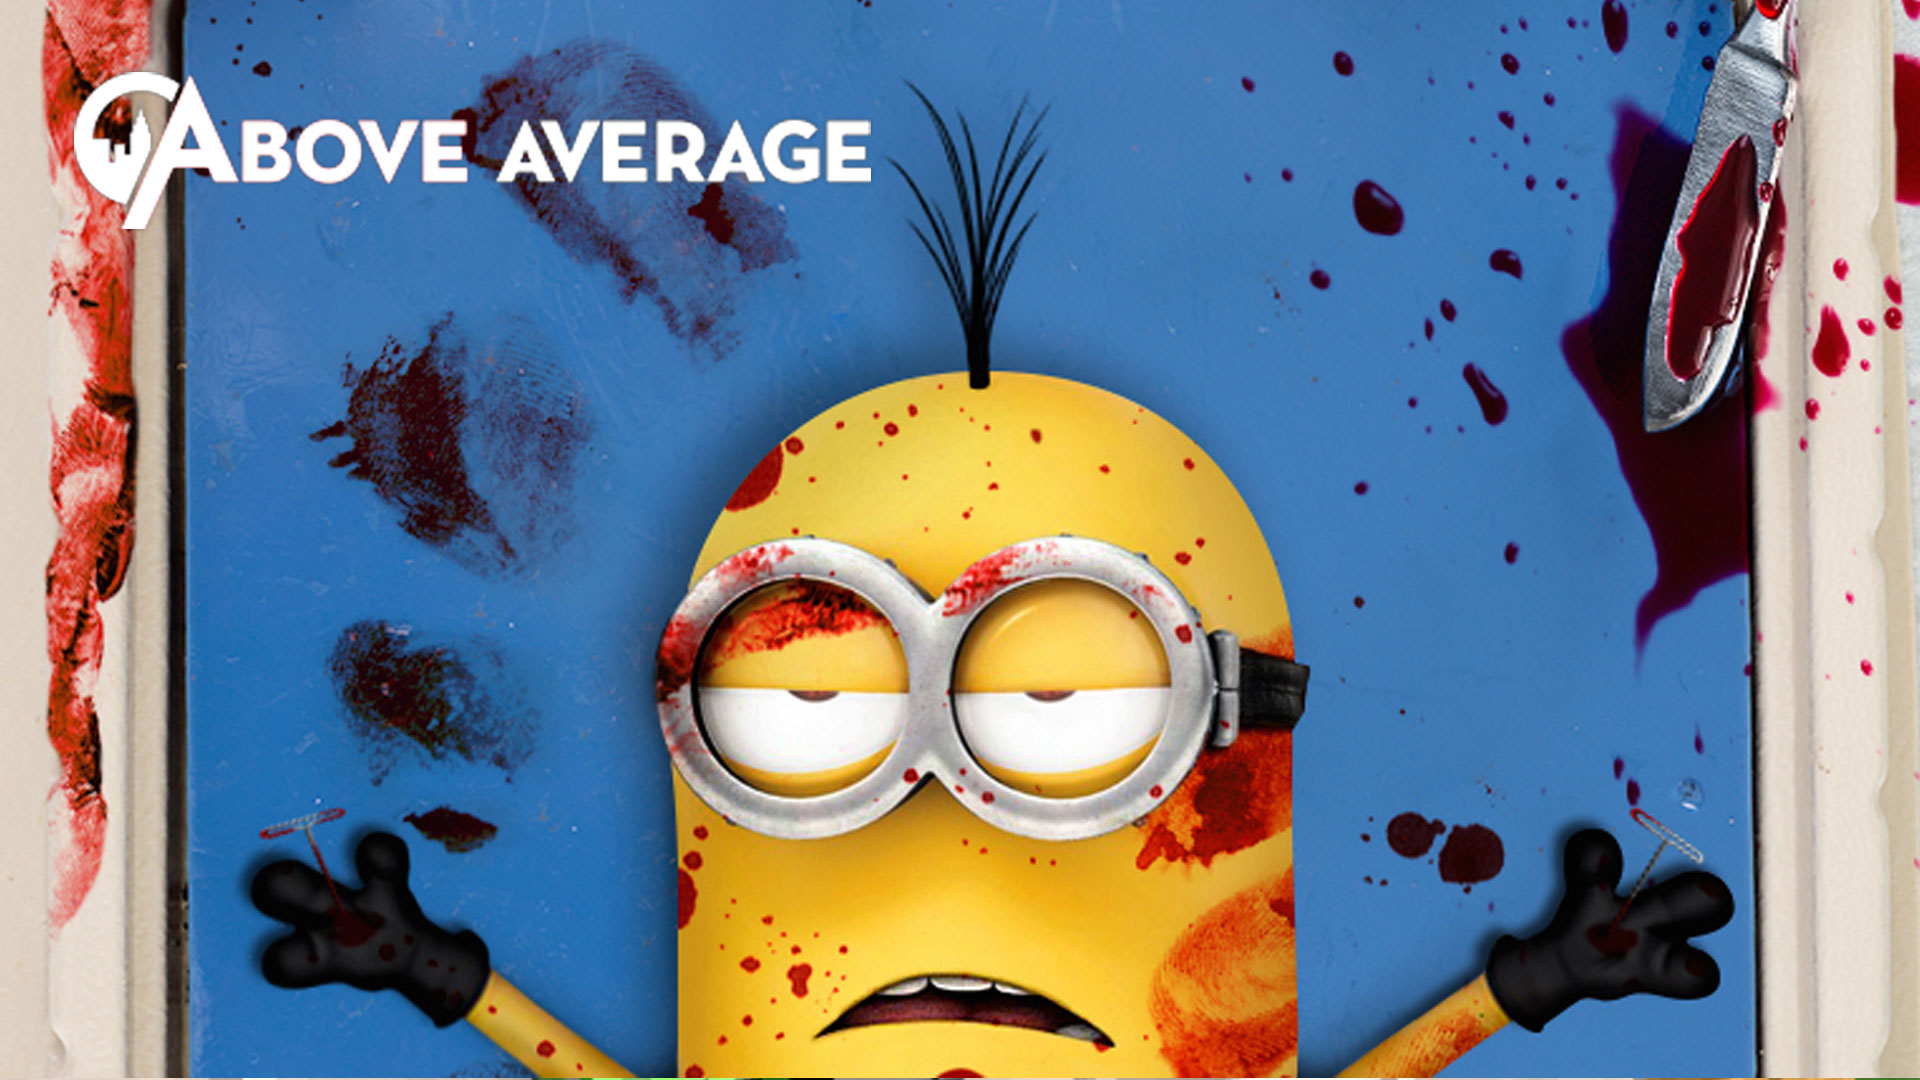 Above Average dissected a Minion–and boy, was it bloody! (NSFW)